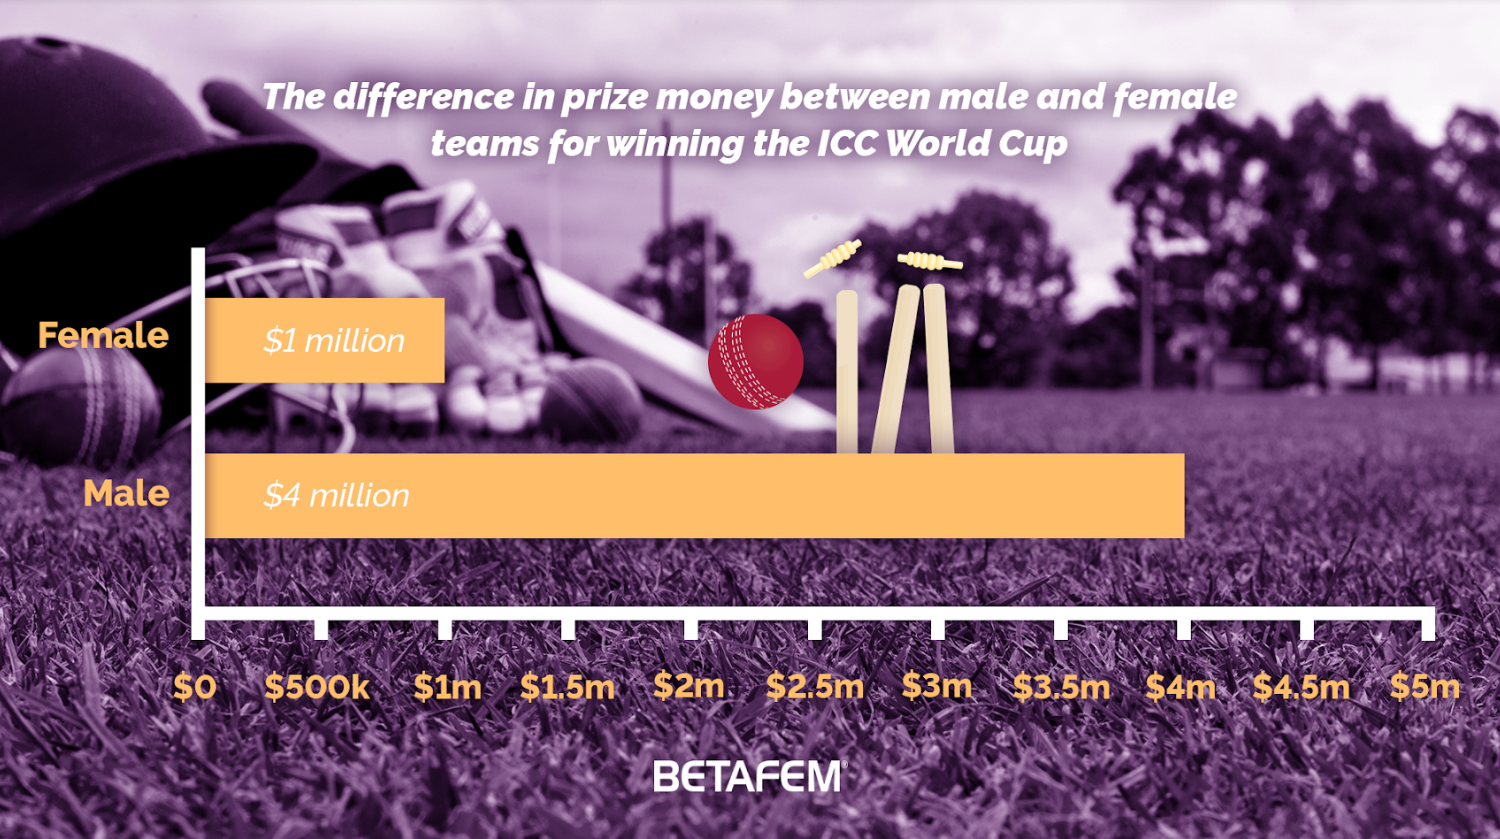 Prize money differences between male and female teams winning icc world cup